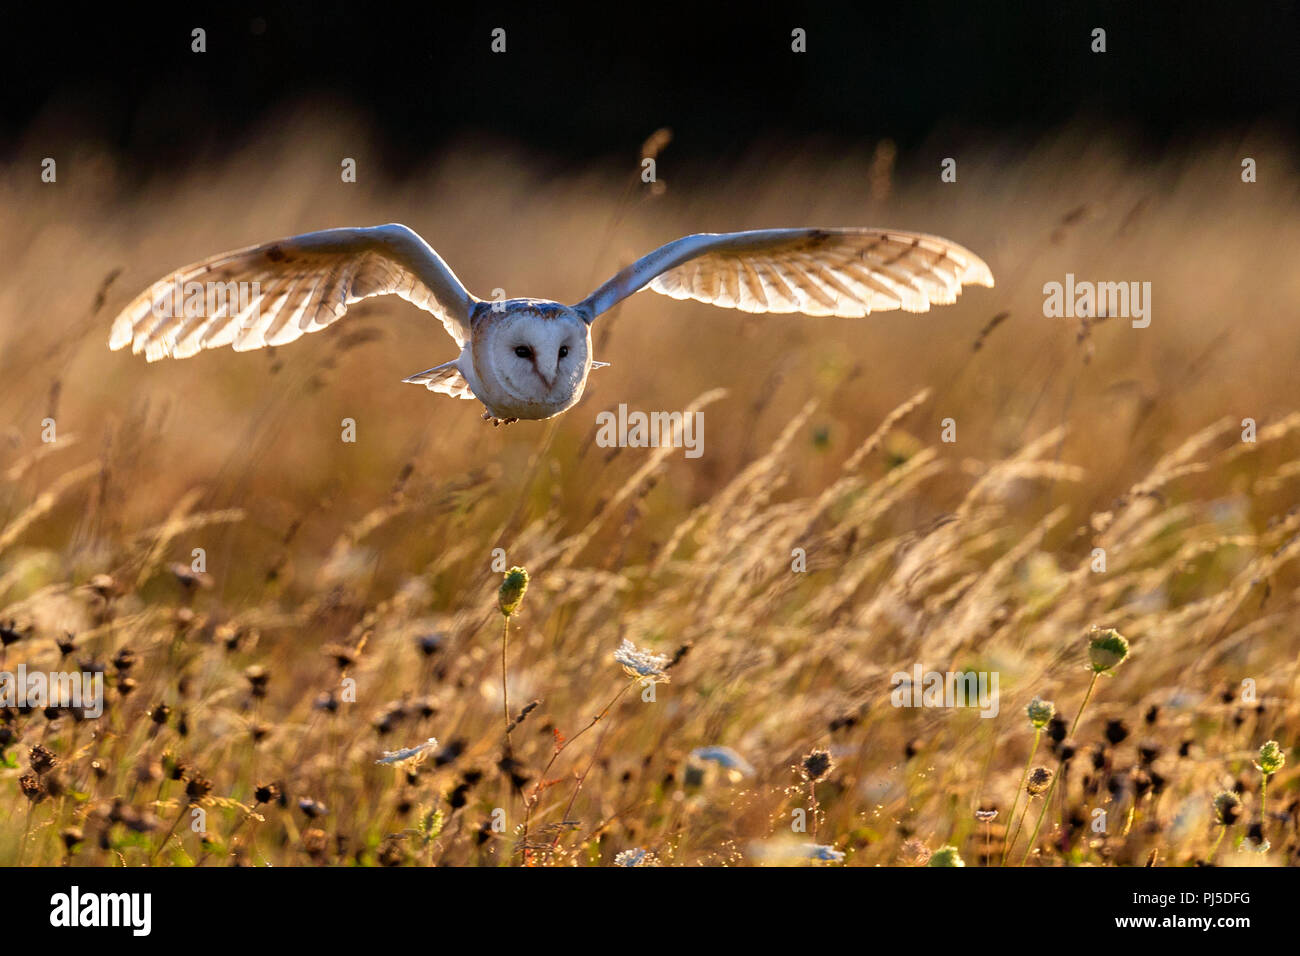 Barn owl in flight - Stock Image